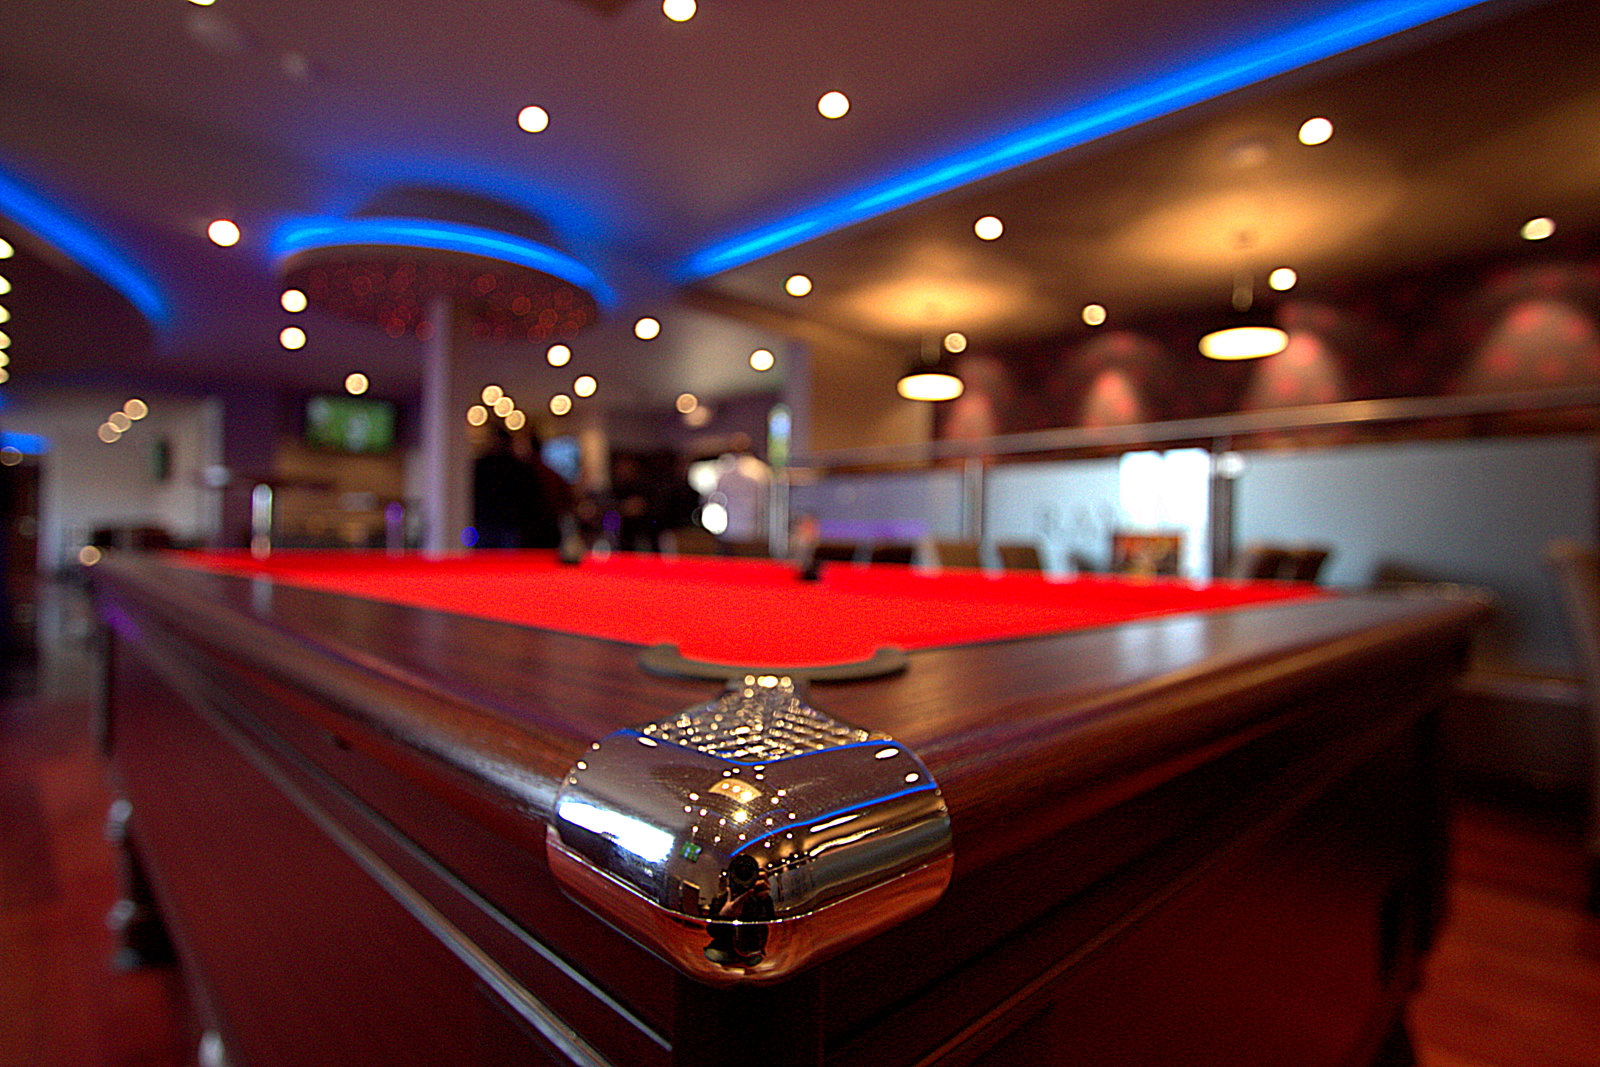 play pool at ram club in crawley